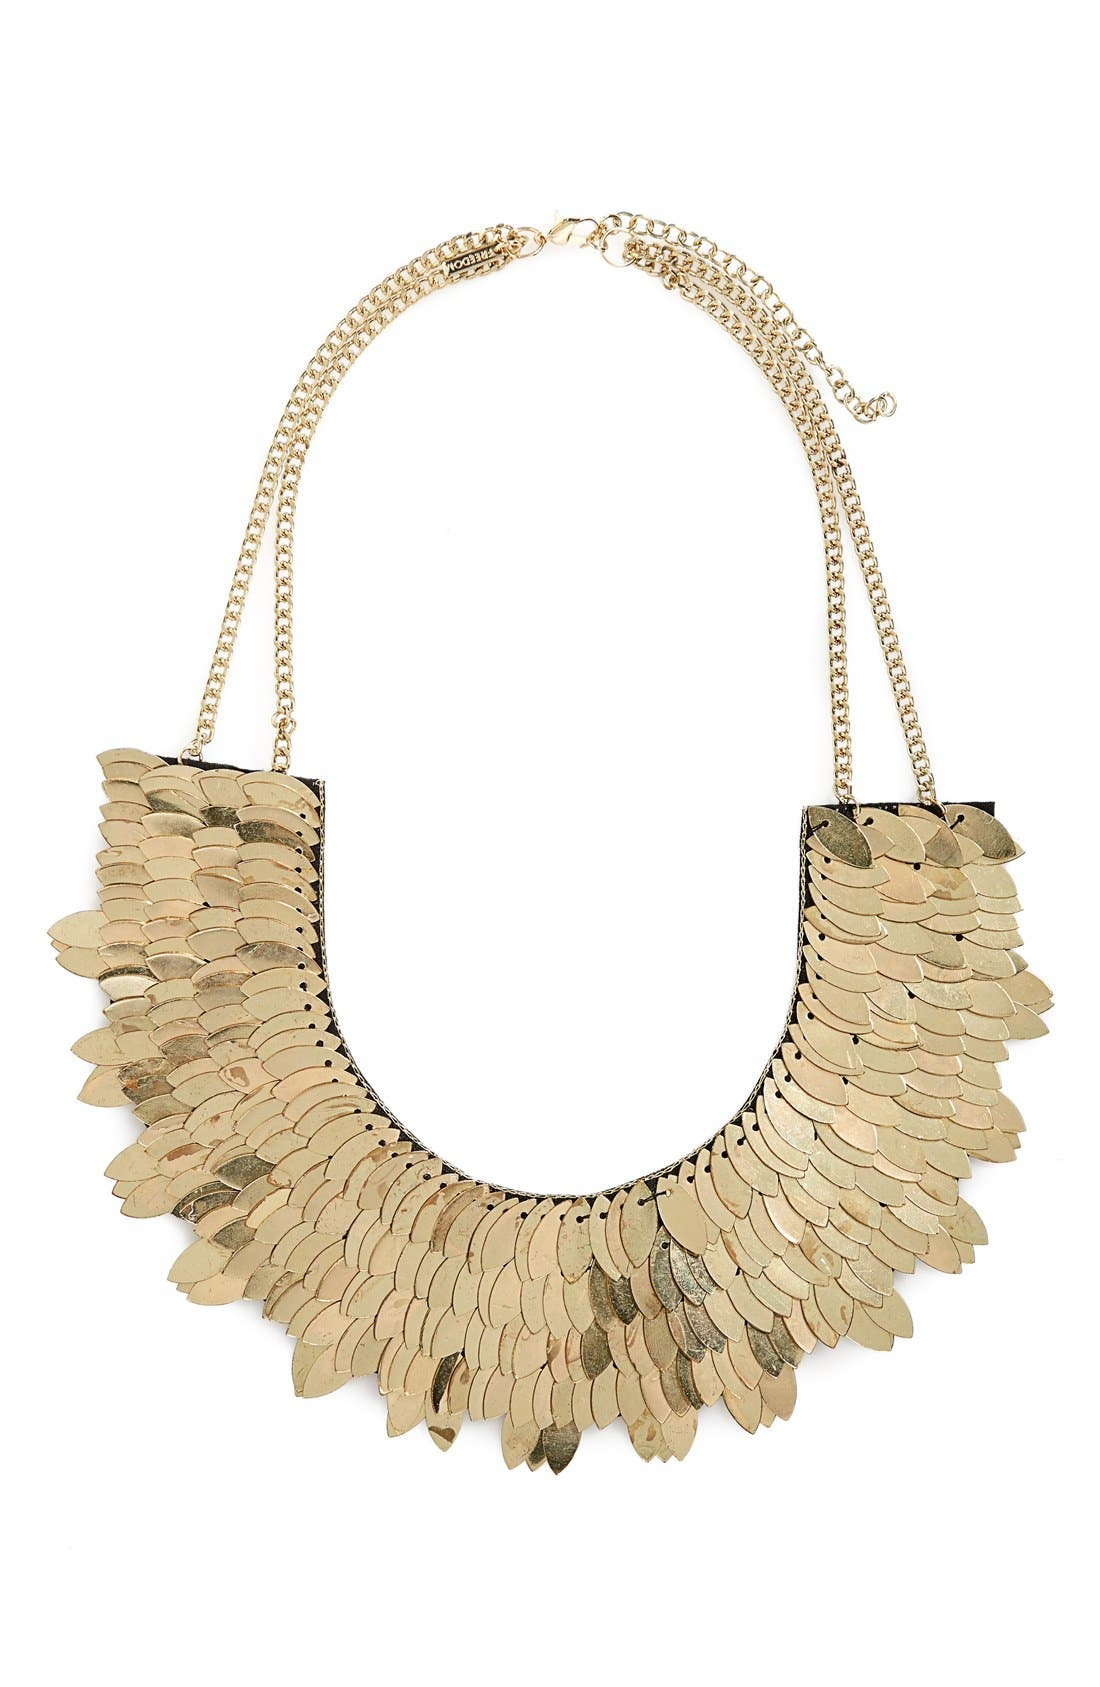 TOPSHOP, Metallic Leaf Necklace, Main thumbnail 1, color, 710